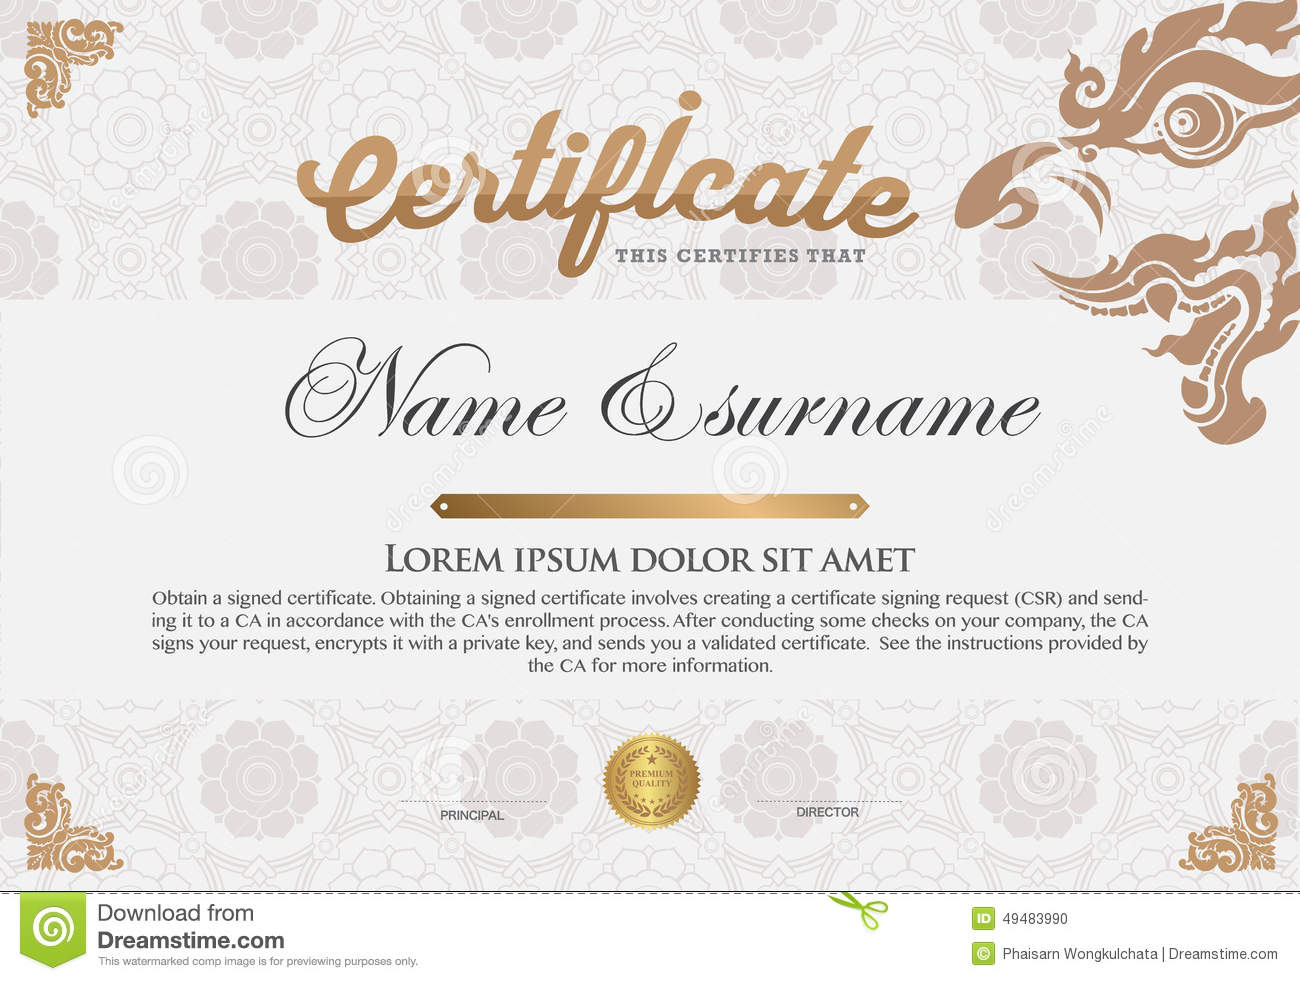 Training certificates templates free download resume website example training certificates templates free download training certificates templates free download 1betcityfo Image collections